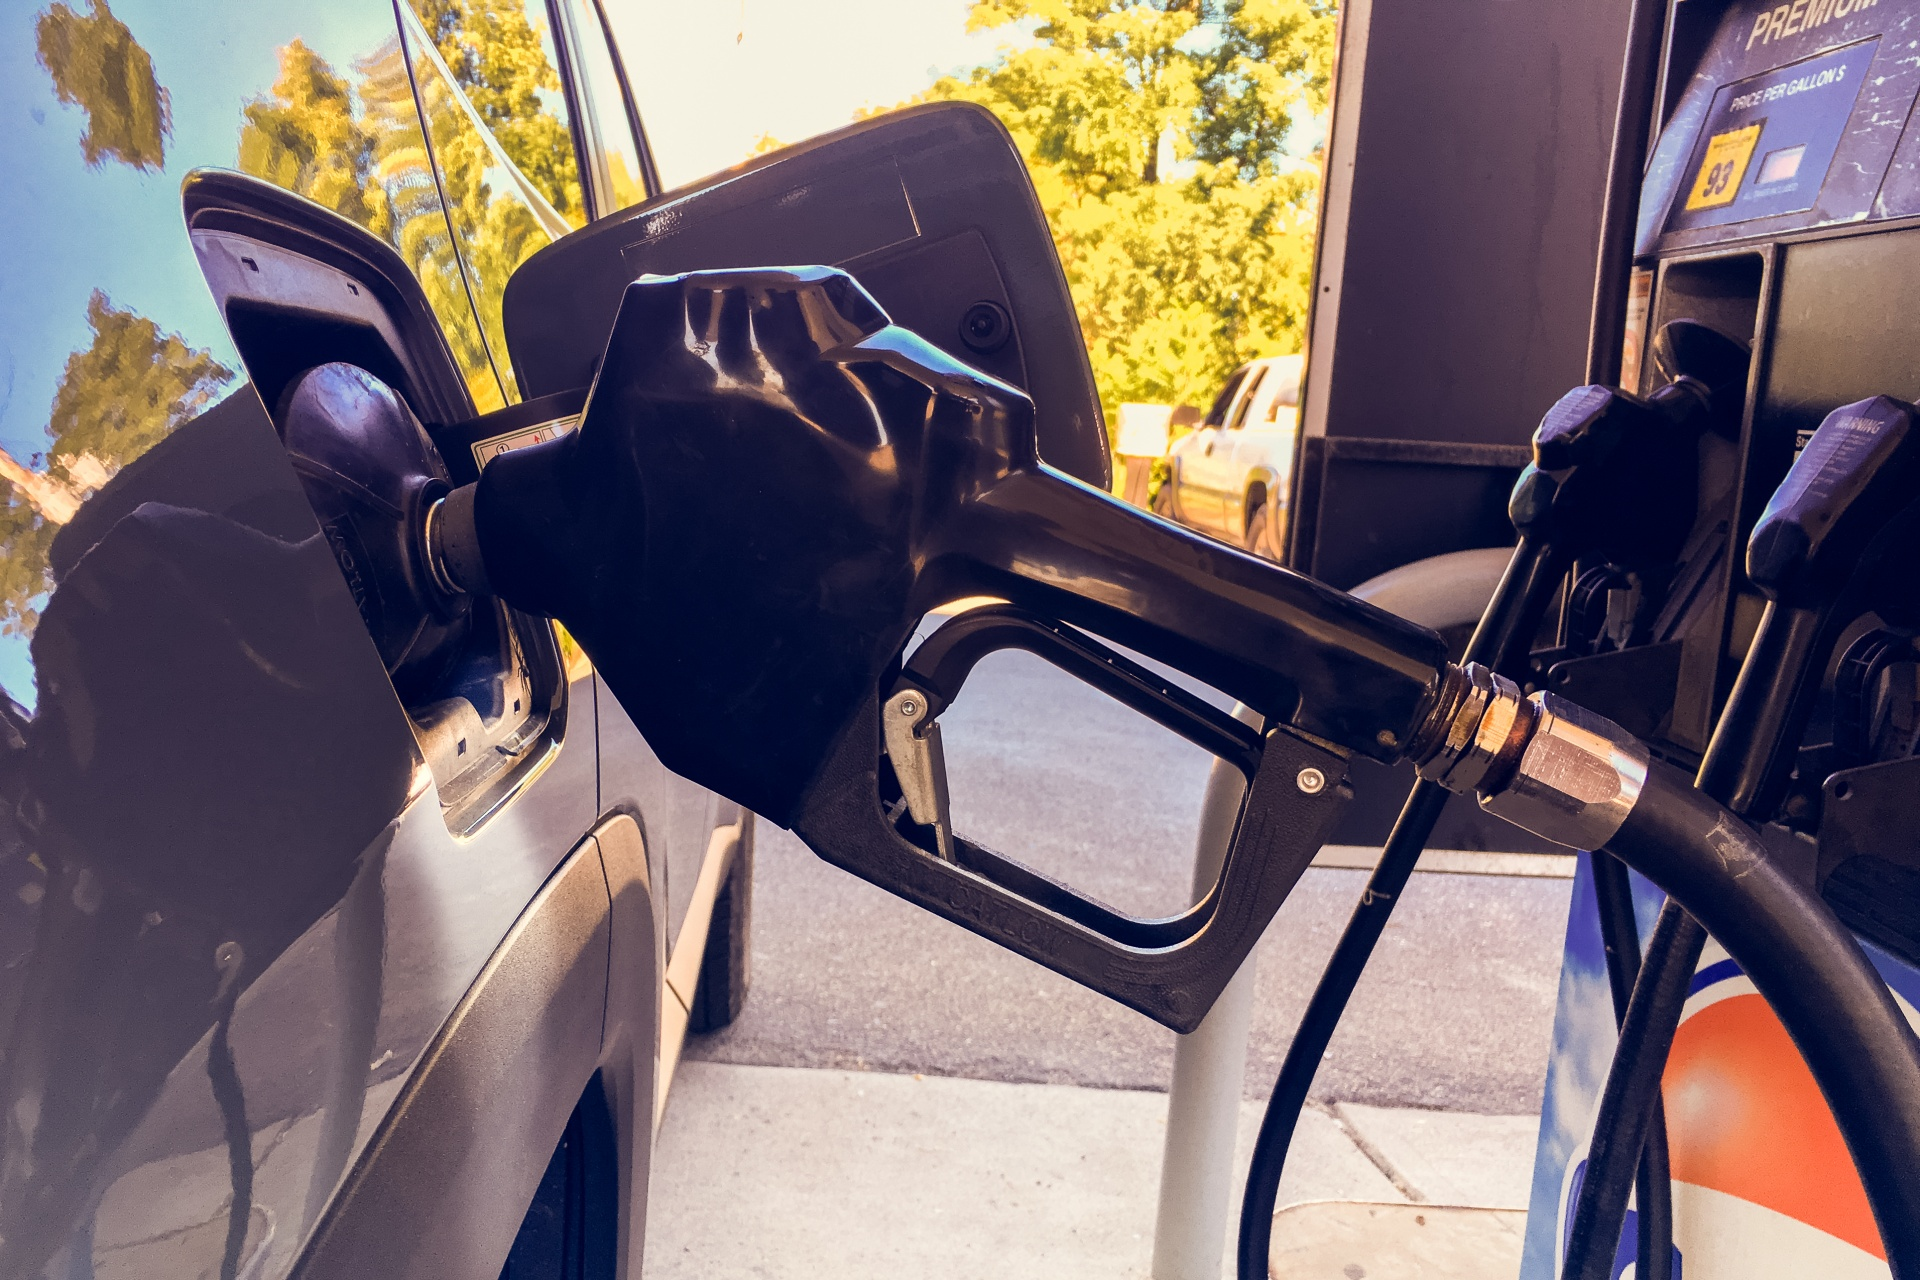 Wholesale price hikes the culprit behind raised prices at the pumps